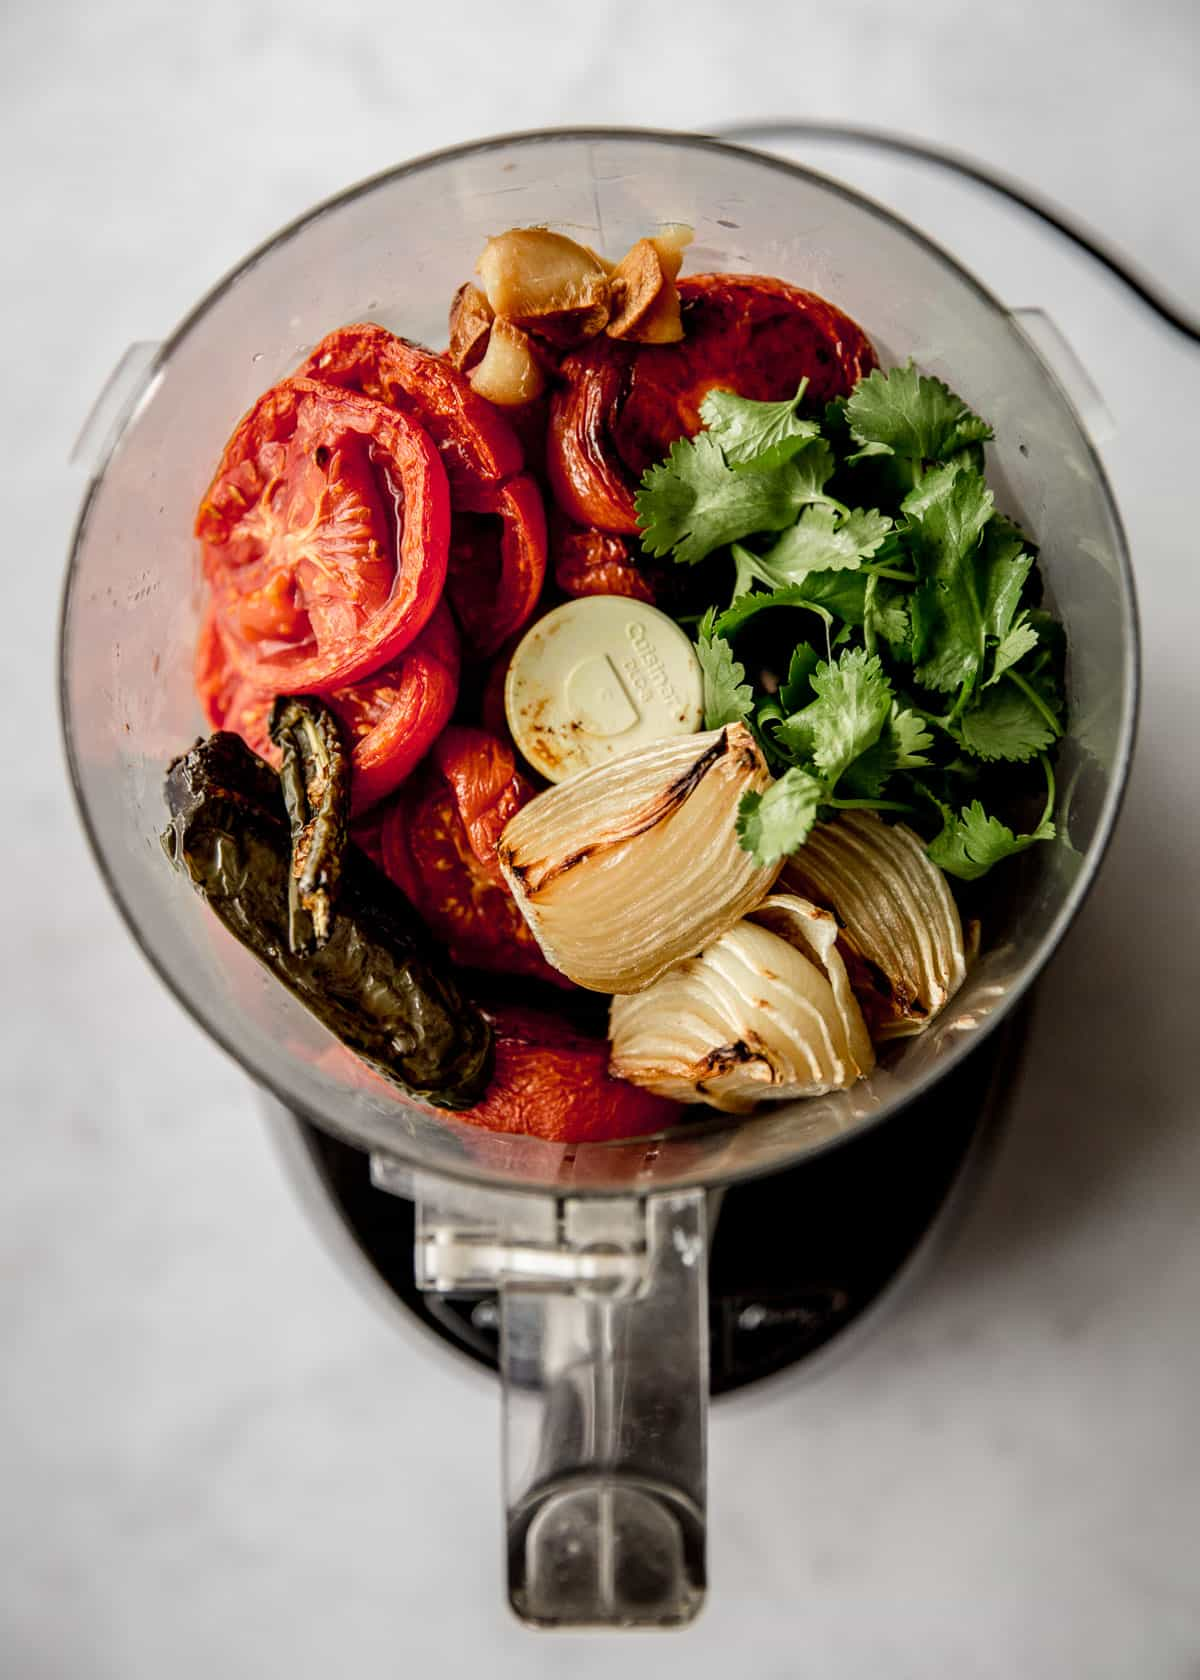 roasted vegetables in a food processor